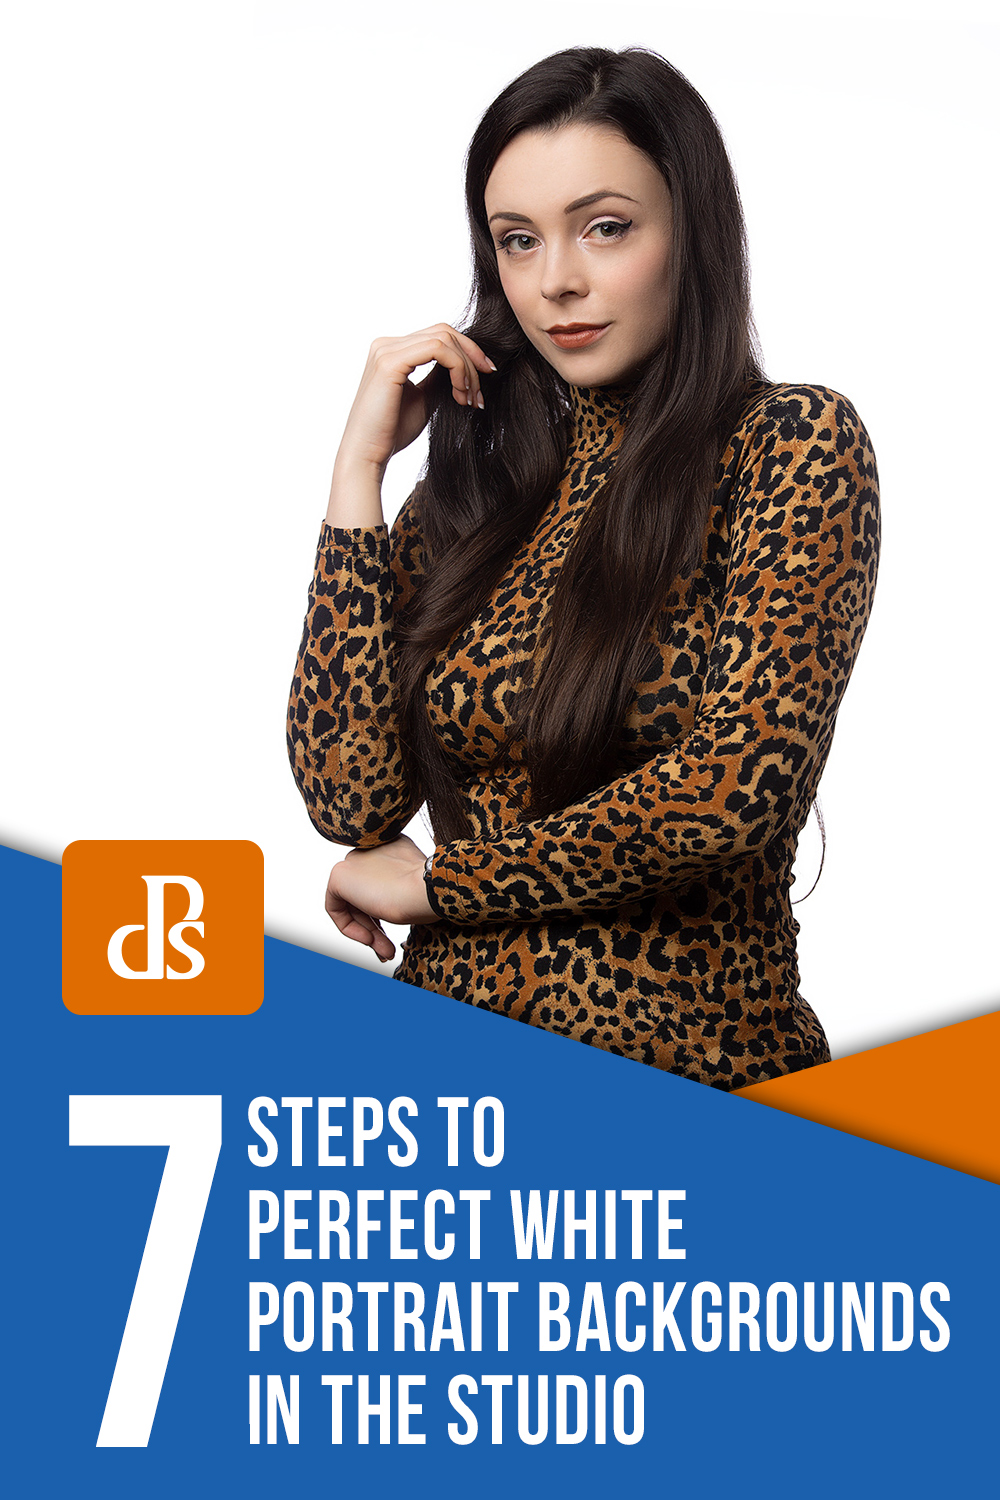 7 Steps to Perfect White Portrait Backgrounds in the Studio